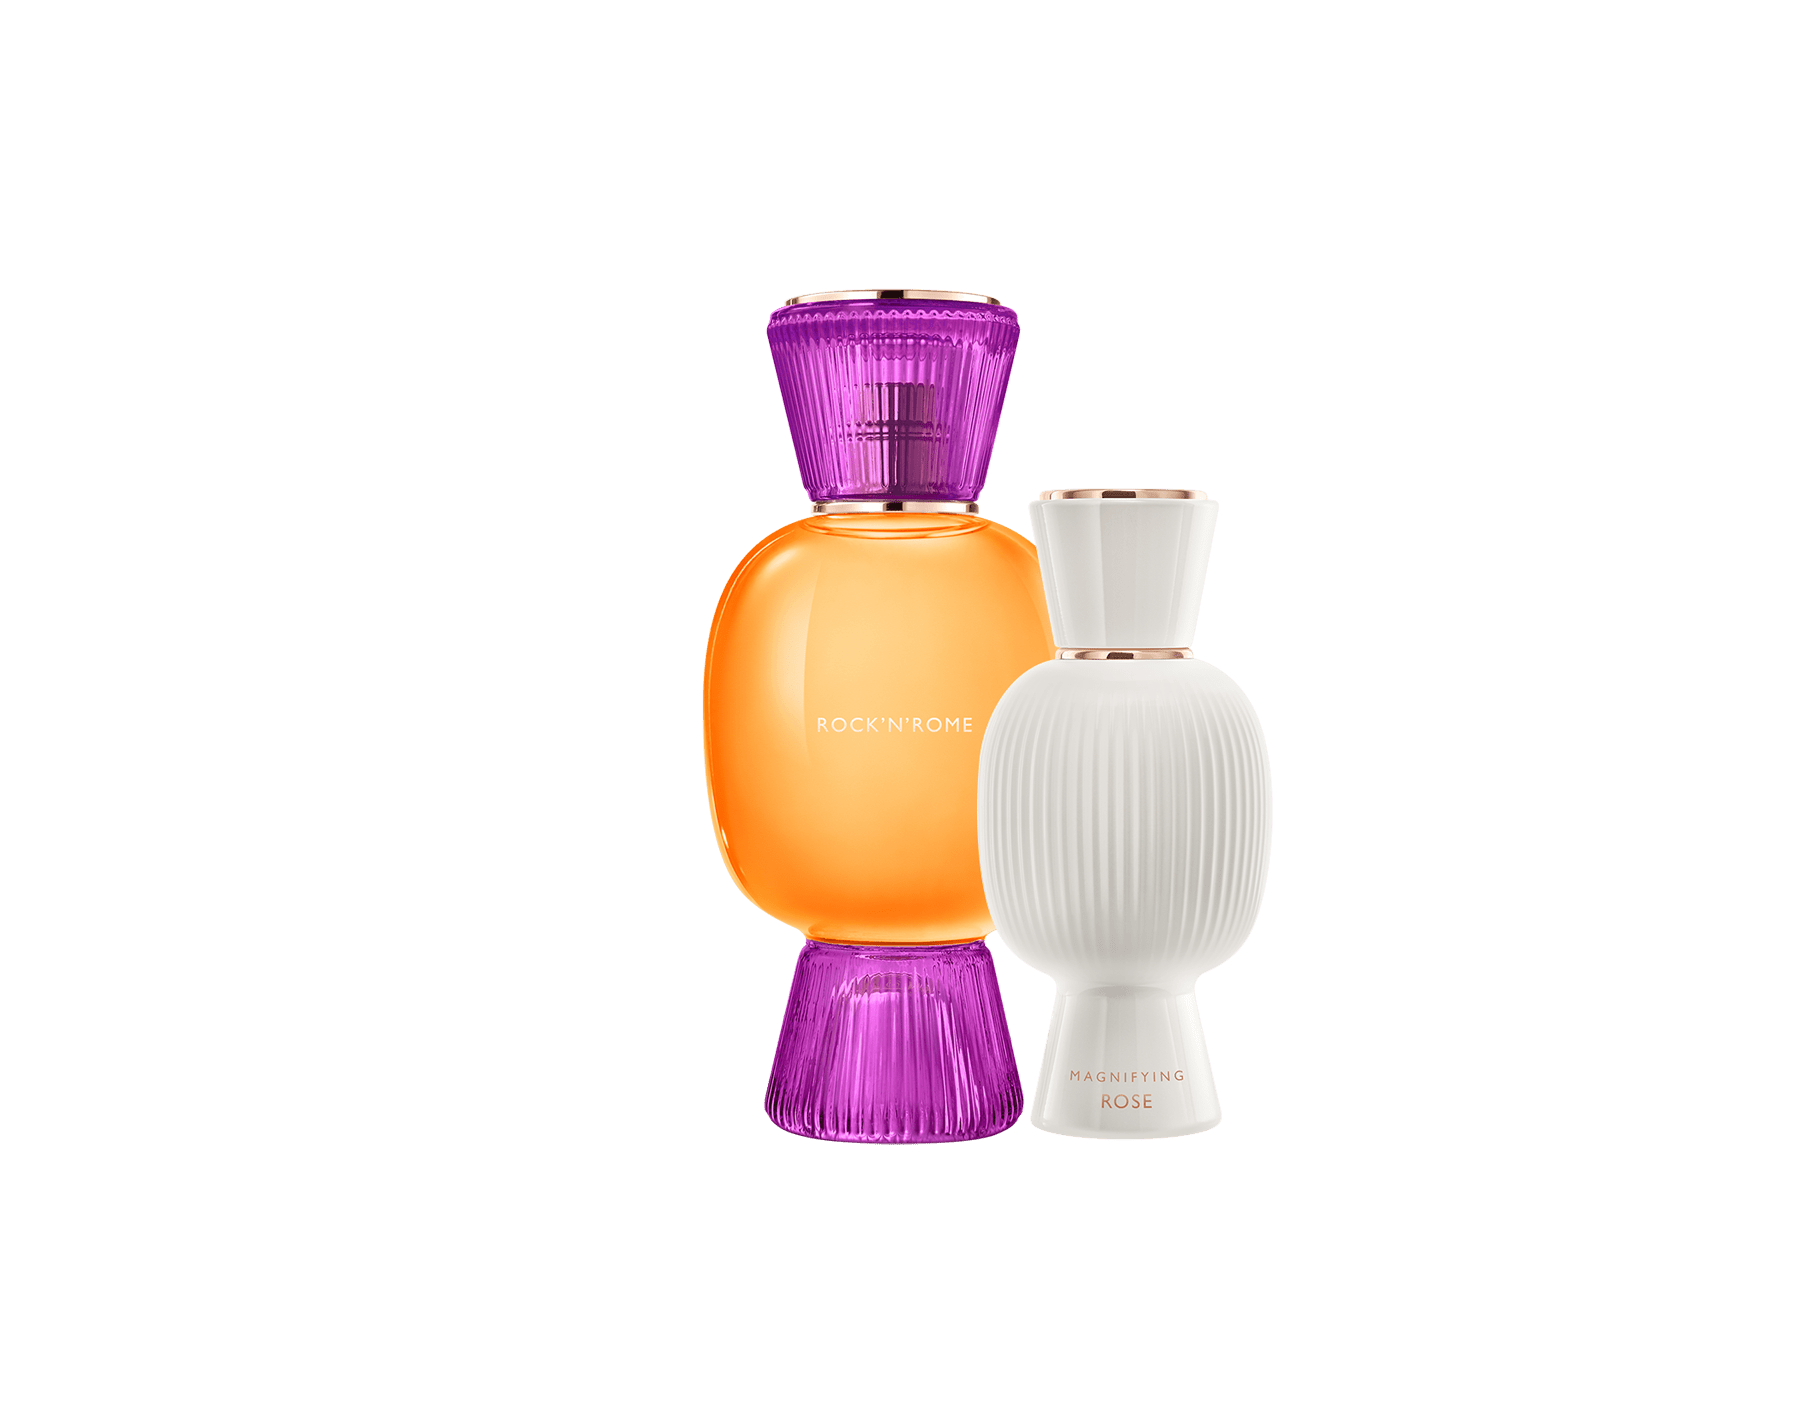 An exclusive perfume set, as bold and unique as you. The liquorous floriental Rock'n'Rome Allegra Eau de Parfum blends with the velvety, voluptuous intensity of the Magnifying Rose Essence, creating an irresistible personalised women's perfume.  Perfume-Set-Rock-n-Rome-Eau-de-Parfum-and-Rose-Magnifying image 1